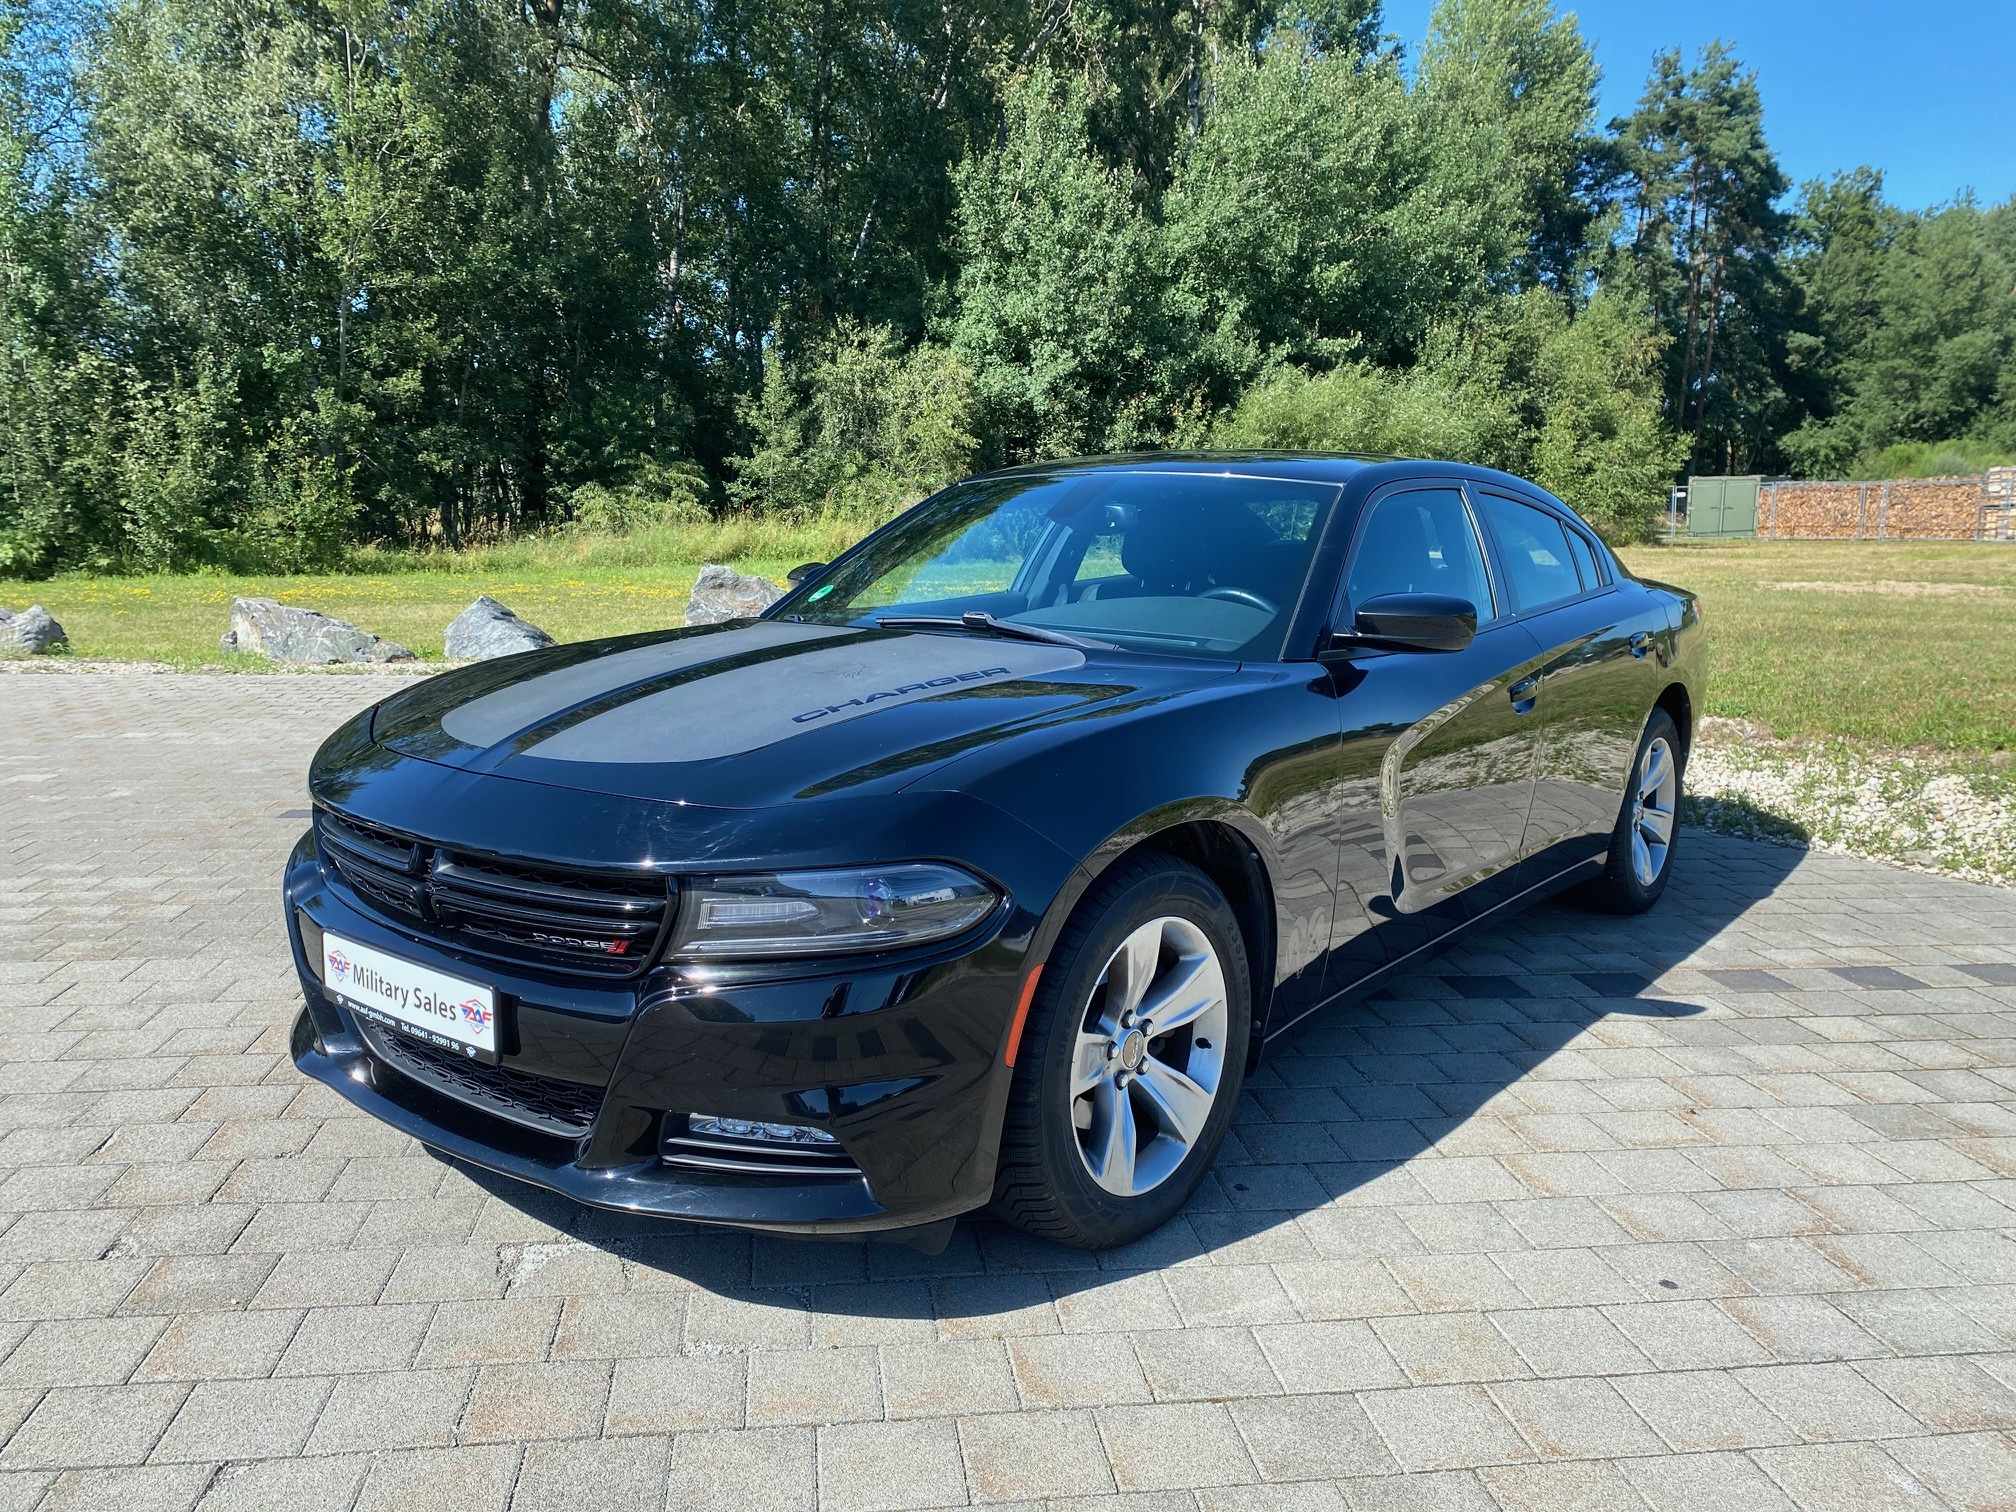 2015 Dodge Charger SXT</br>as low as </br>$169 per paycheck